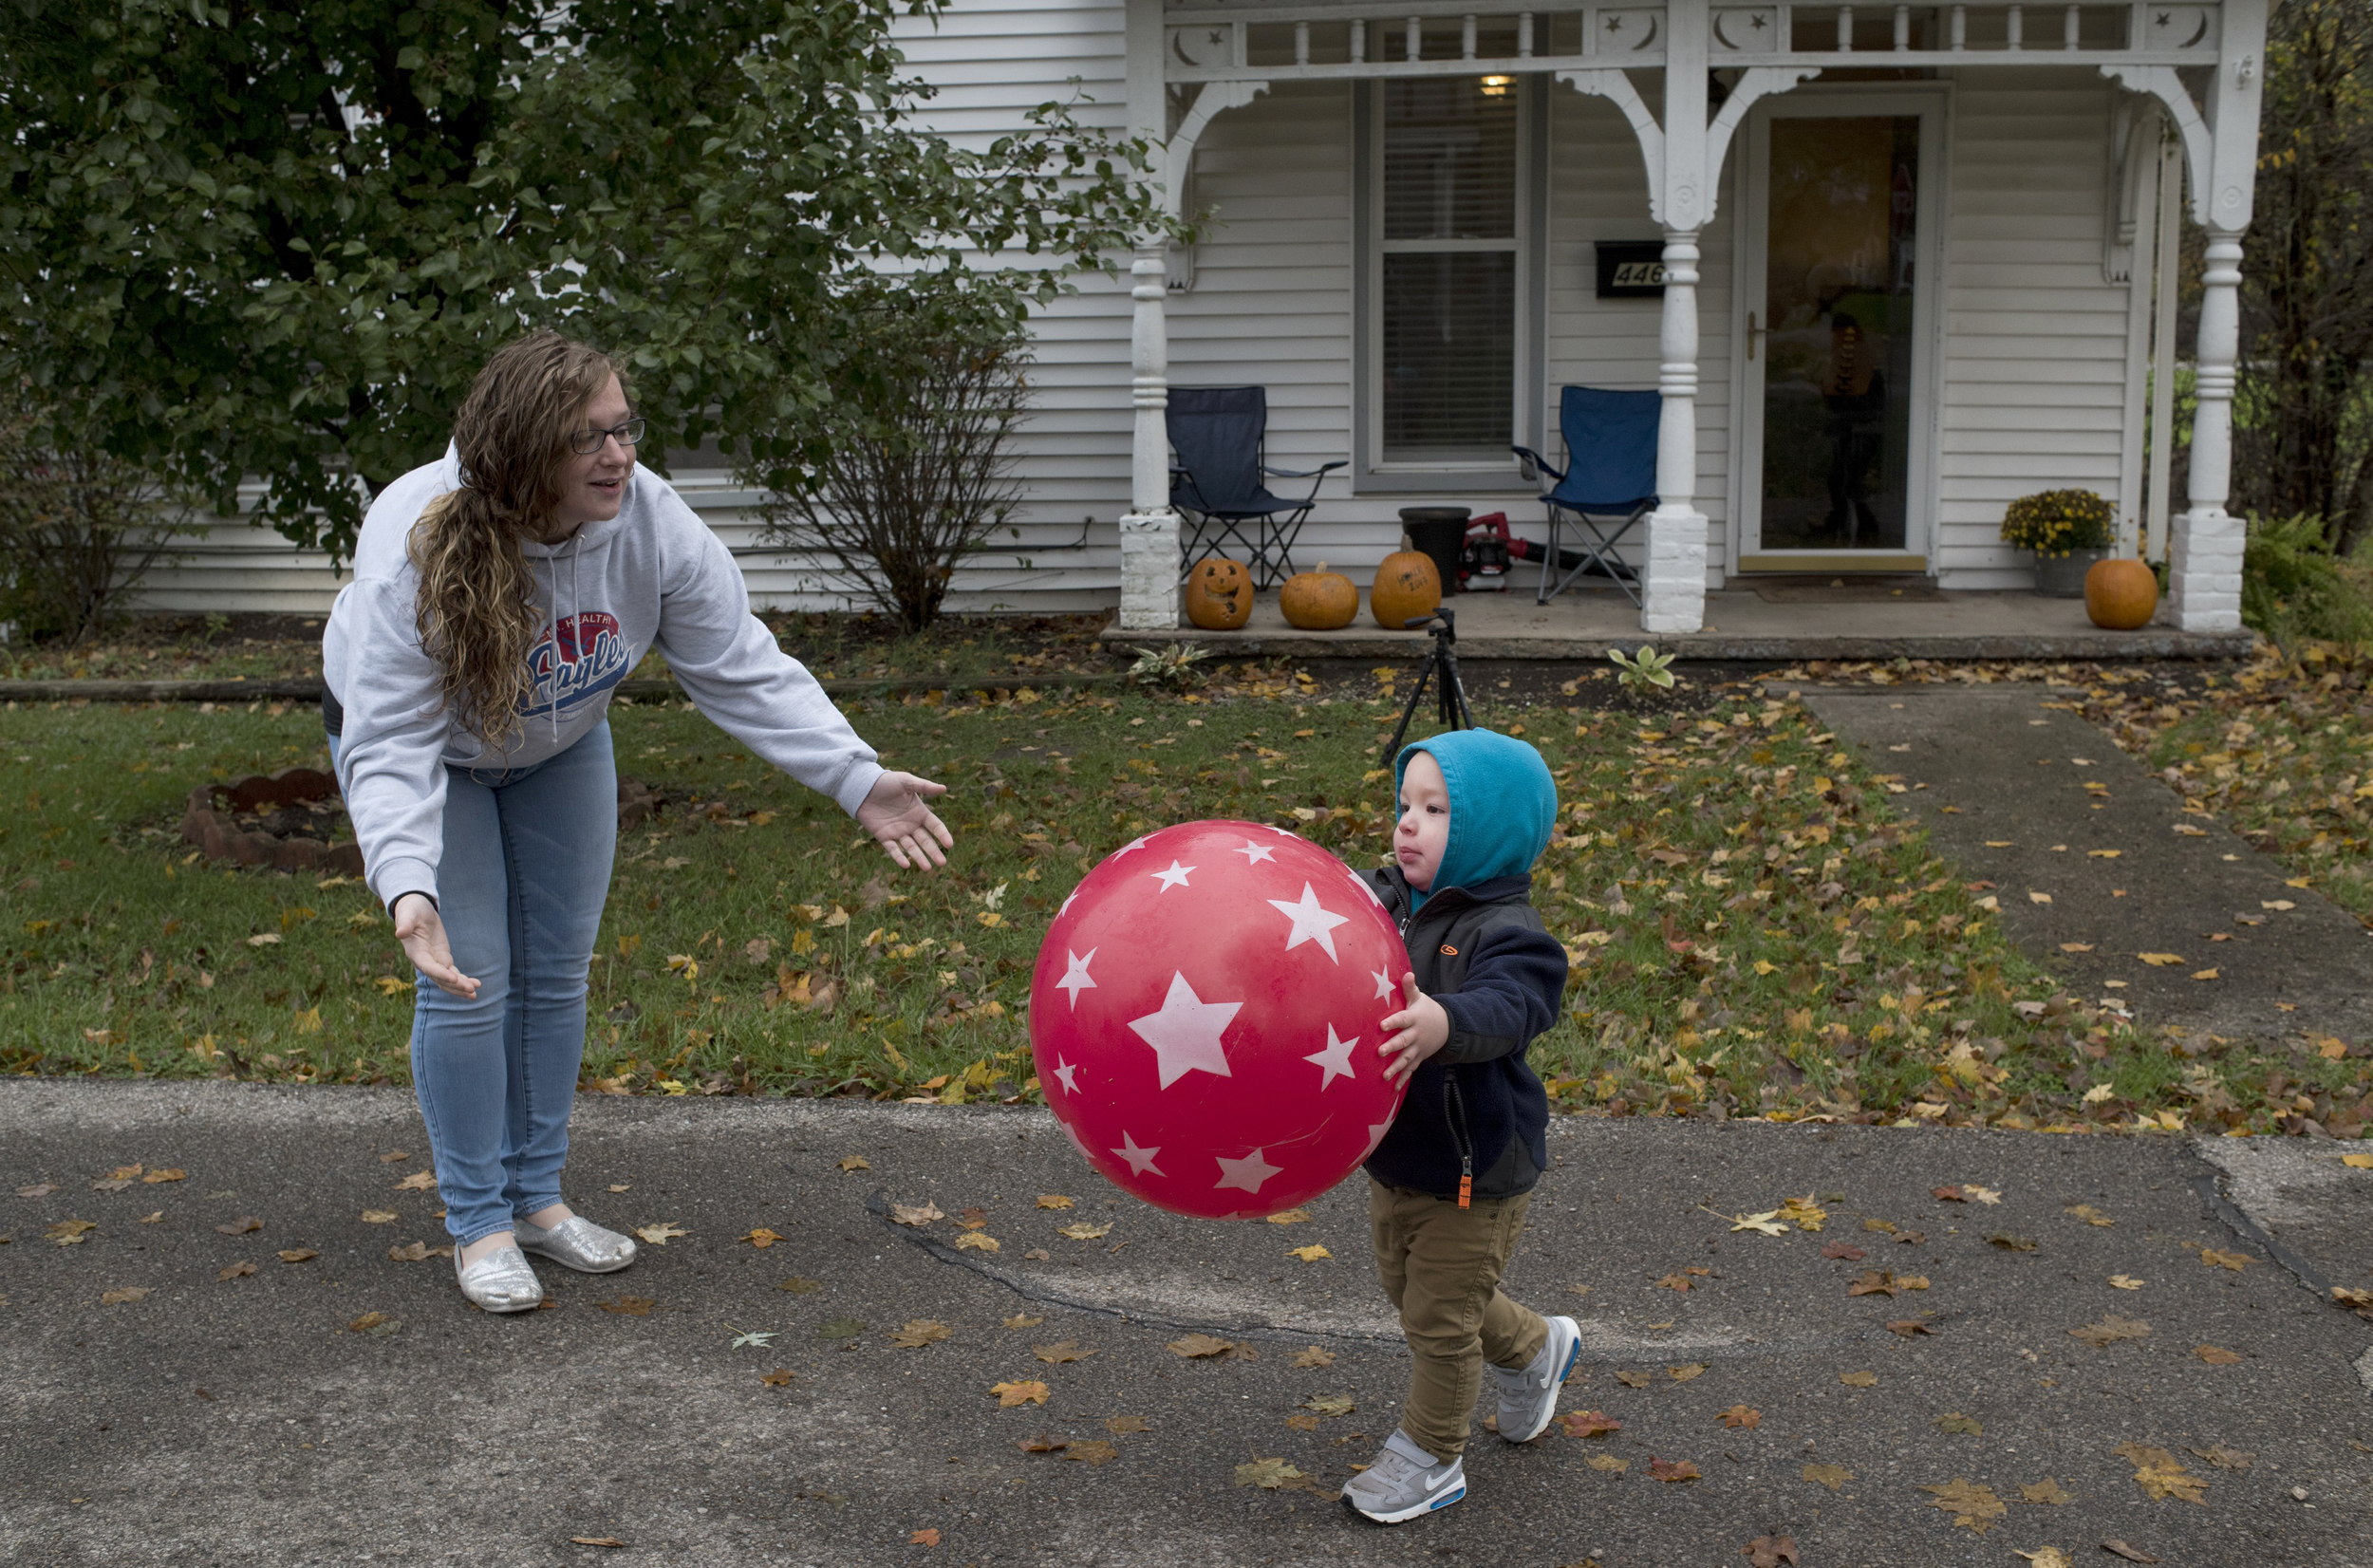 Image: Parker Hurt plays ball with his mother